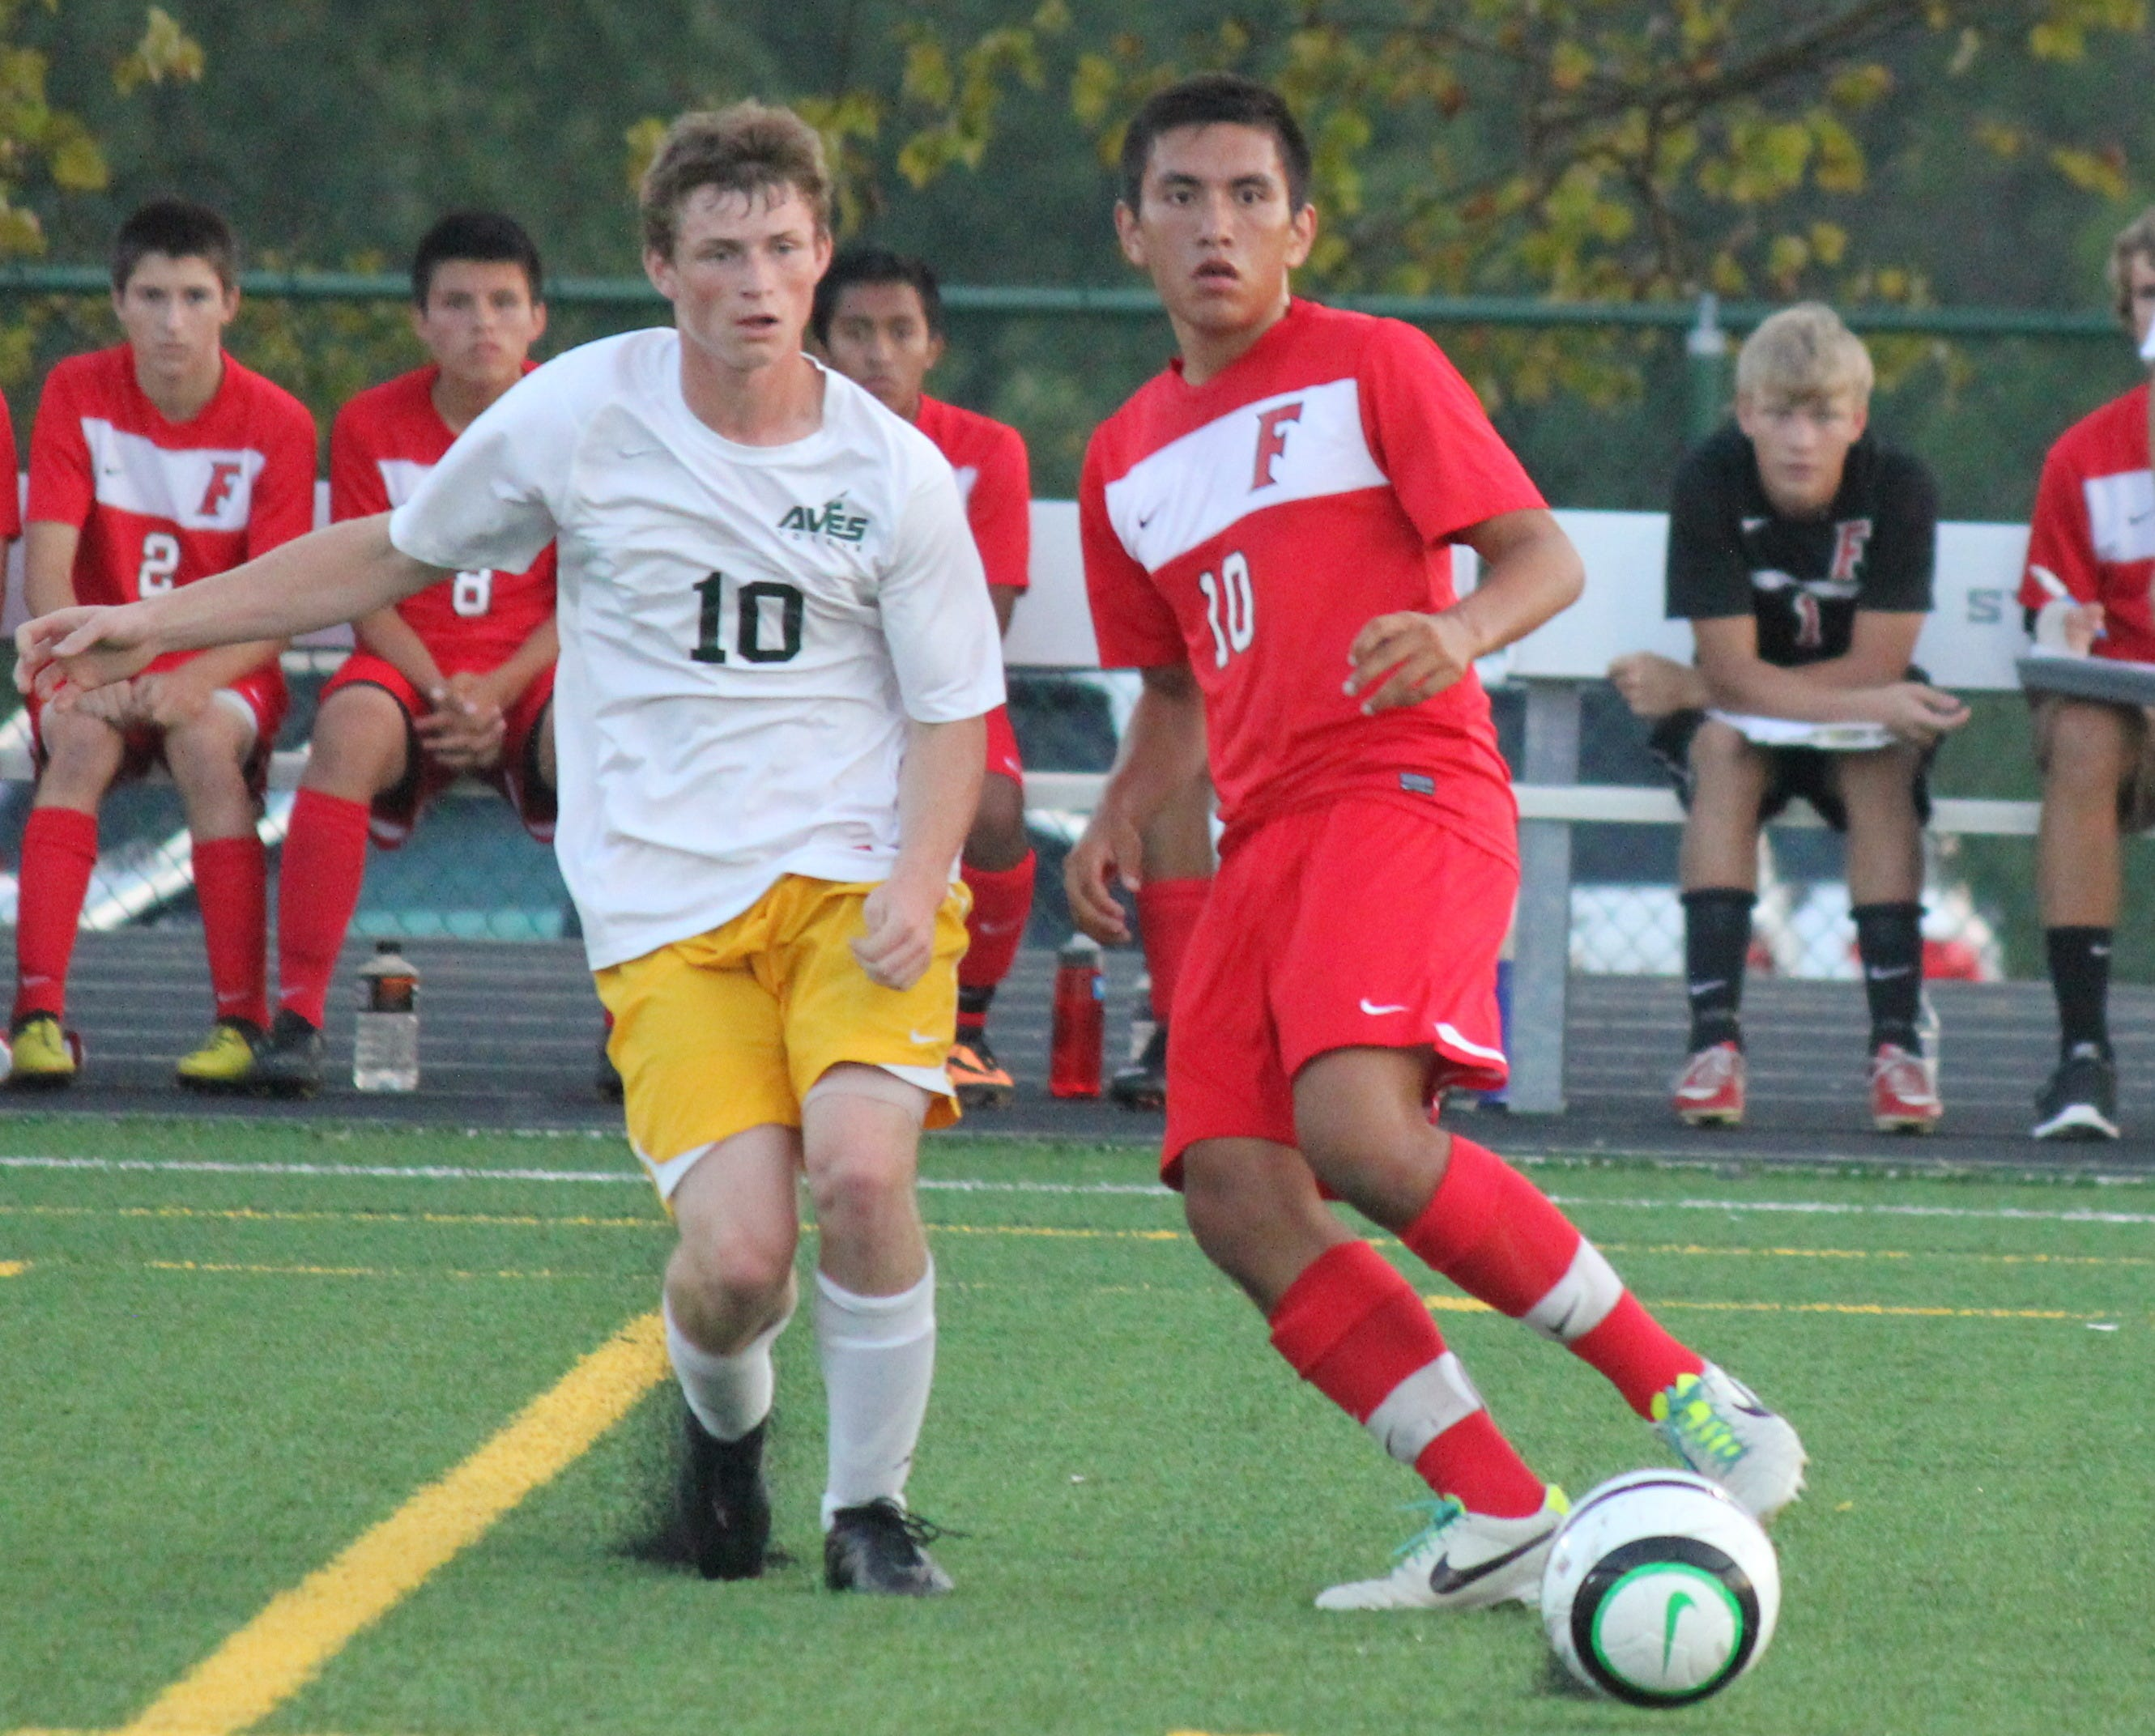 Sycamore forward Brennon Shanks and Fairfield's Yardley Gonzalez watch the flight of the ball as it goes toward teammates last September.